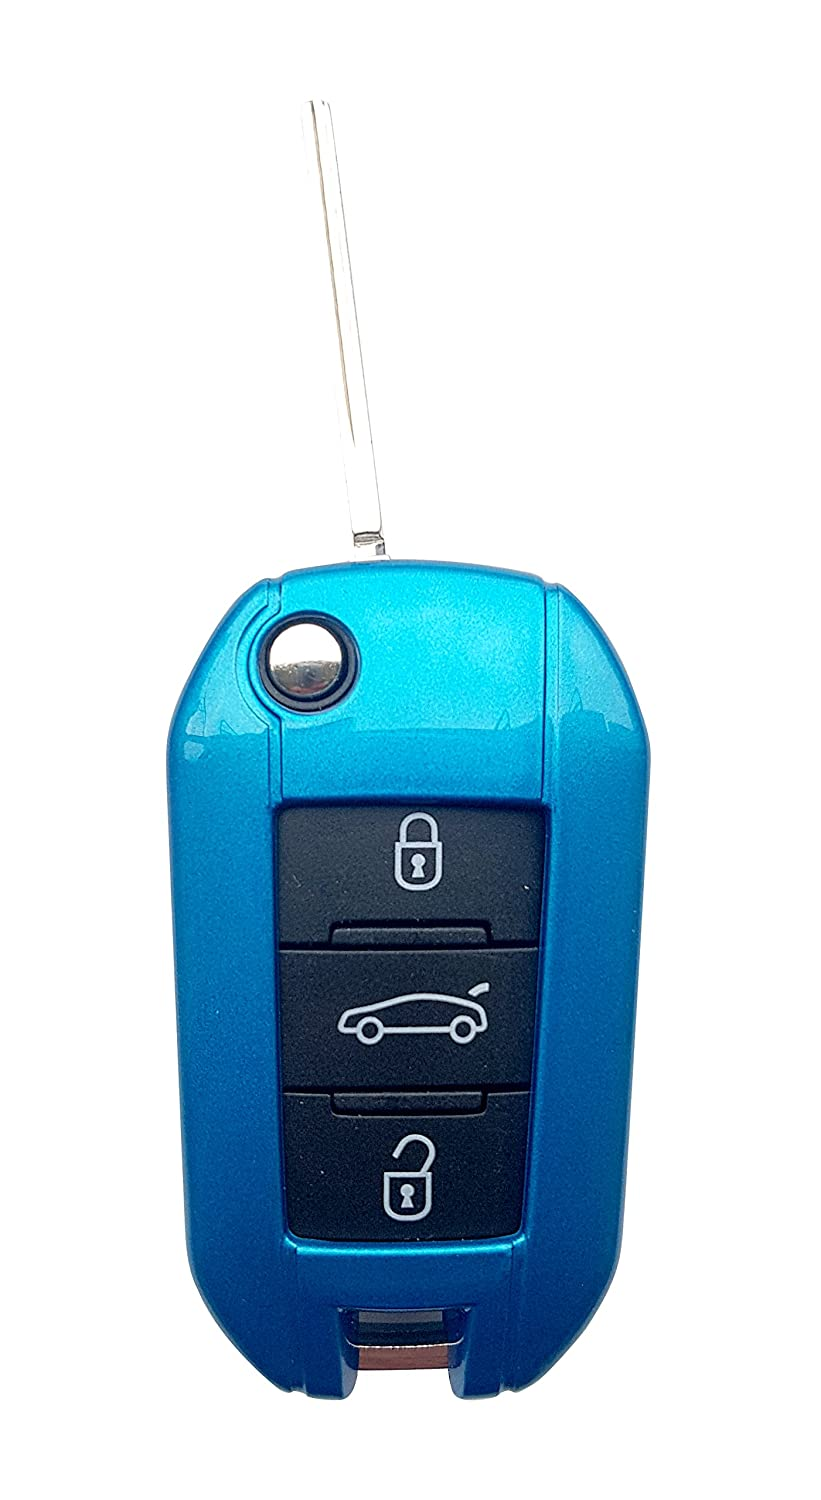 CK Citroen ABS car key cover case for C1 C2 C3 C4 Grand Picasso Cactus